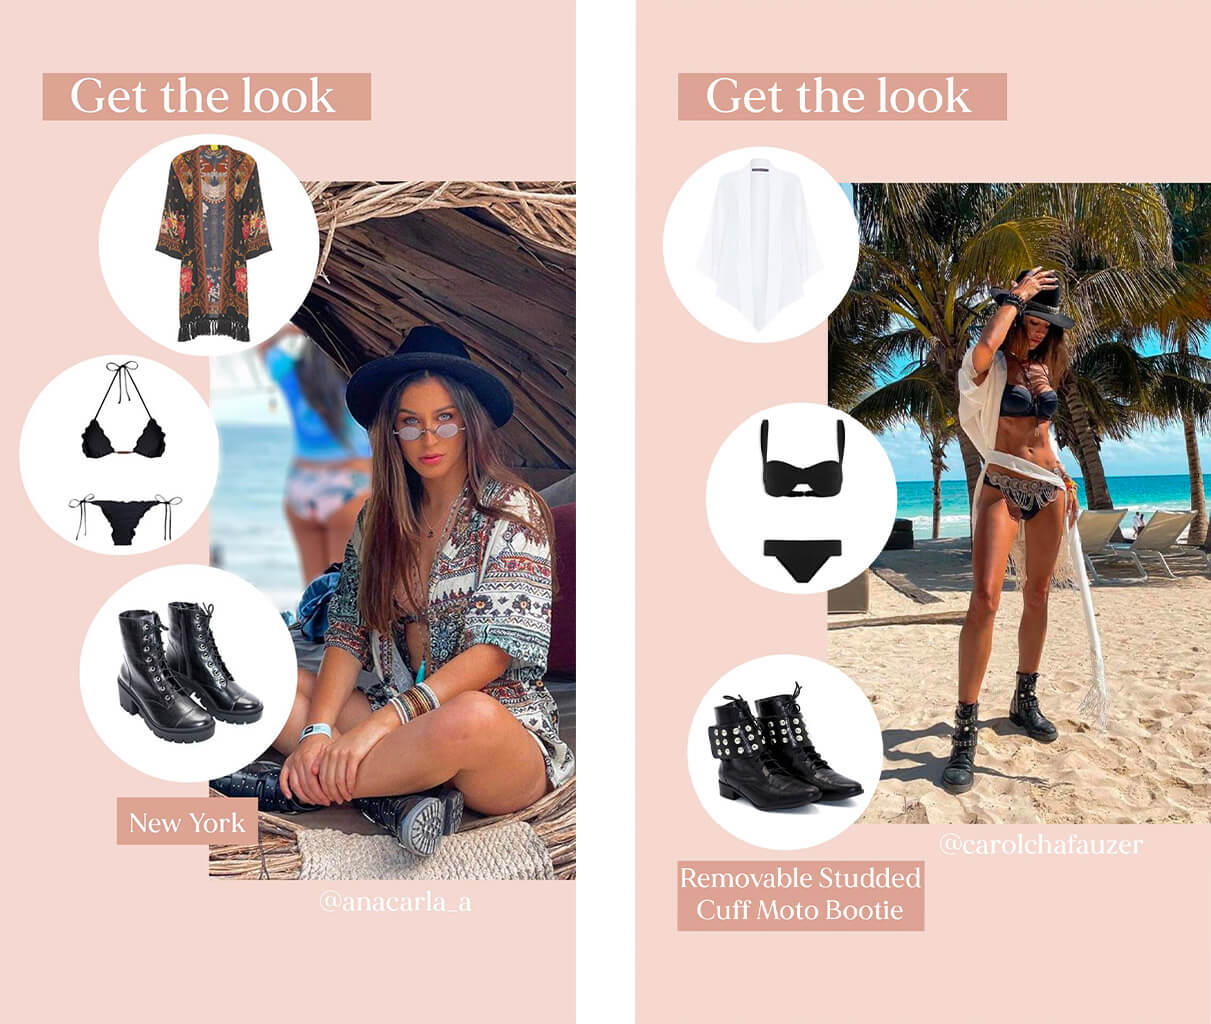 Juliana Heels, booties, ankle boots, Wearing Boots in the Summer, Tulum vibes, Electronic Festival, Sale, 60% OFF